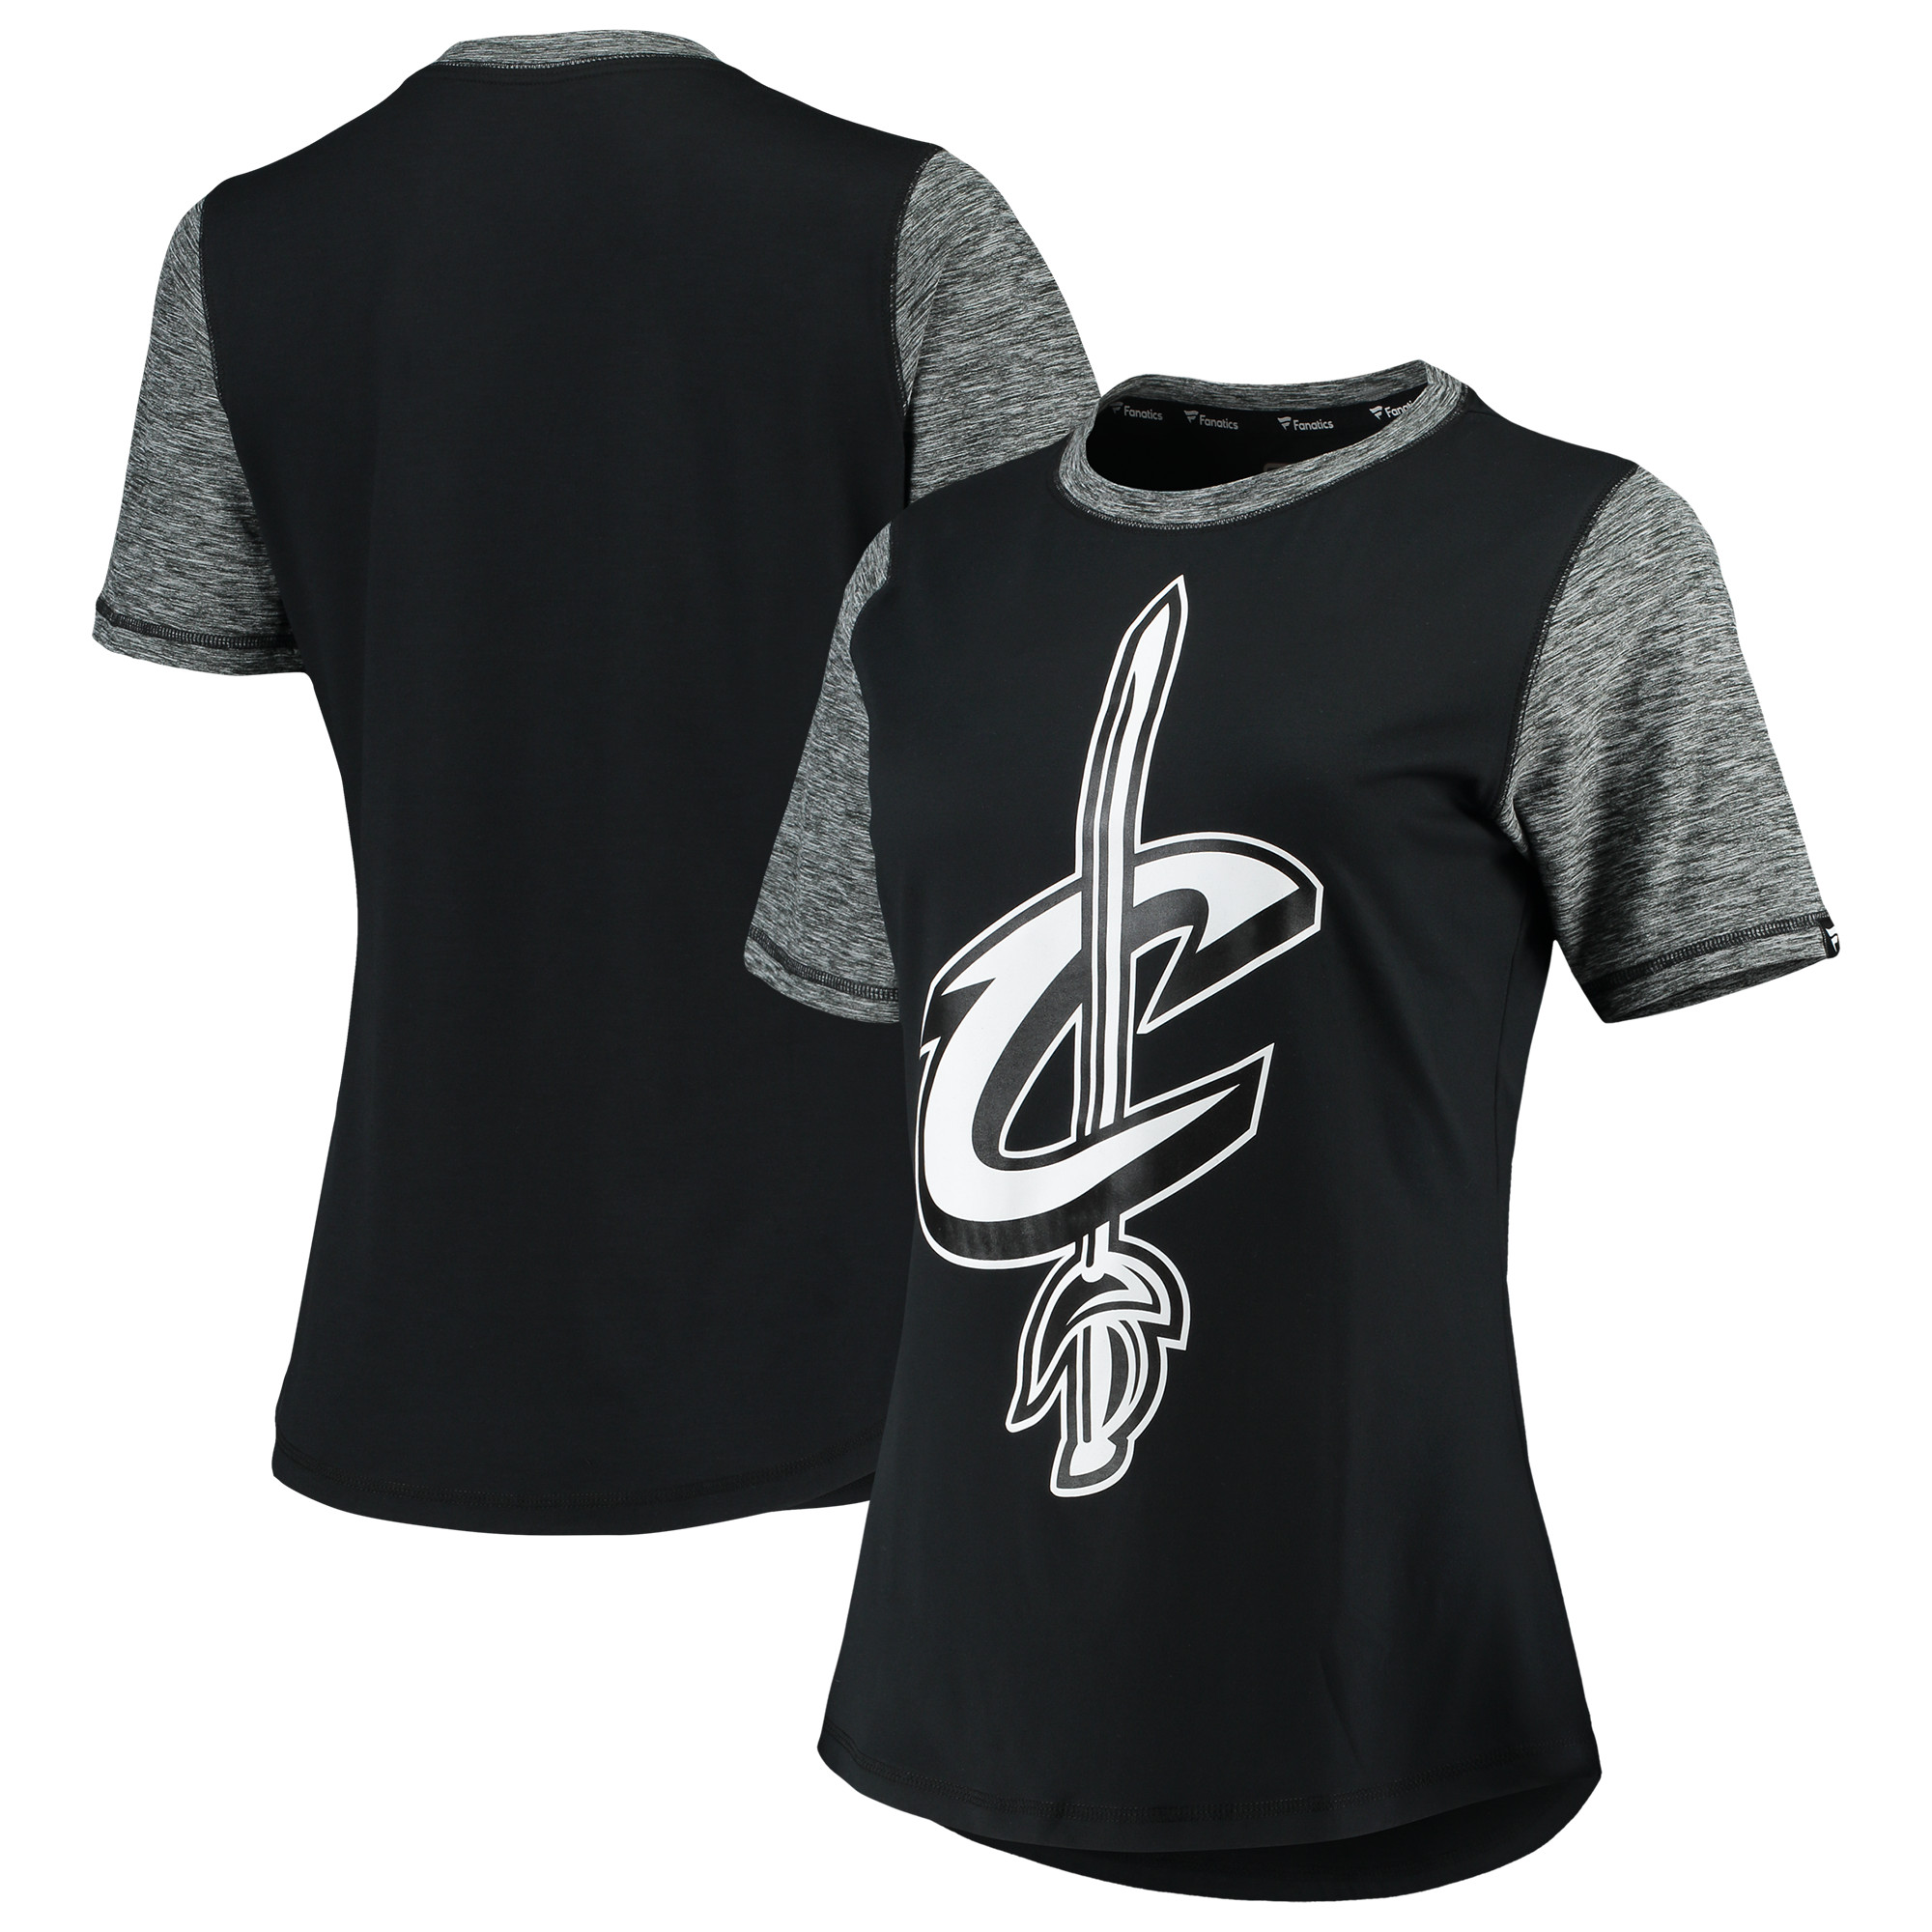 Cleveland Cavaliers Fanatics Branded Women's Made to Move Static Performance T-Shirt - Black/Heathered Charcoal